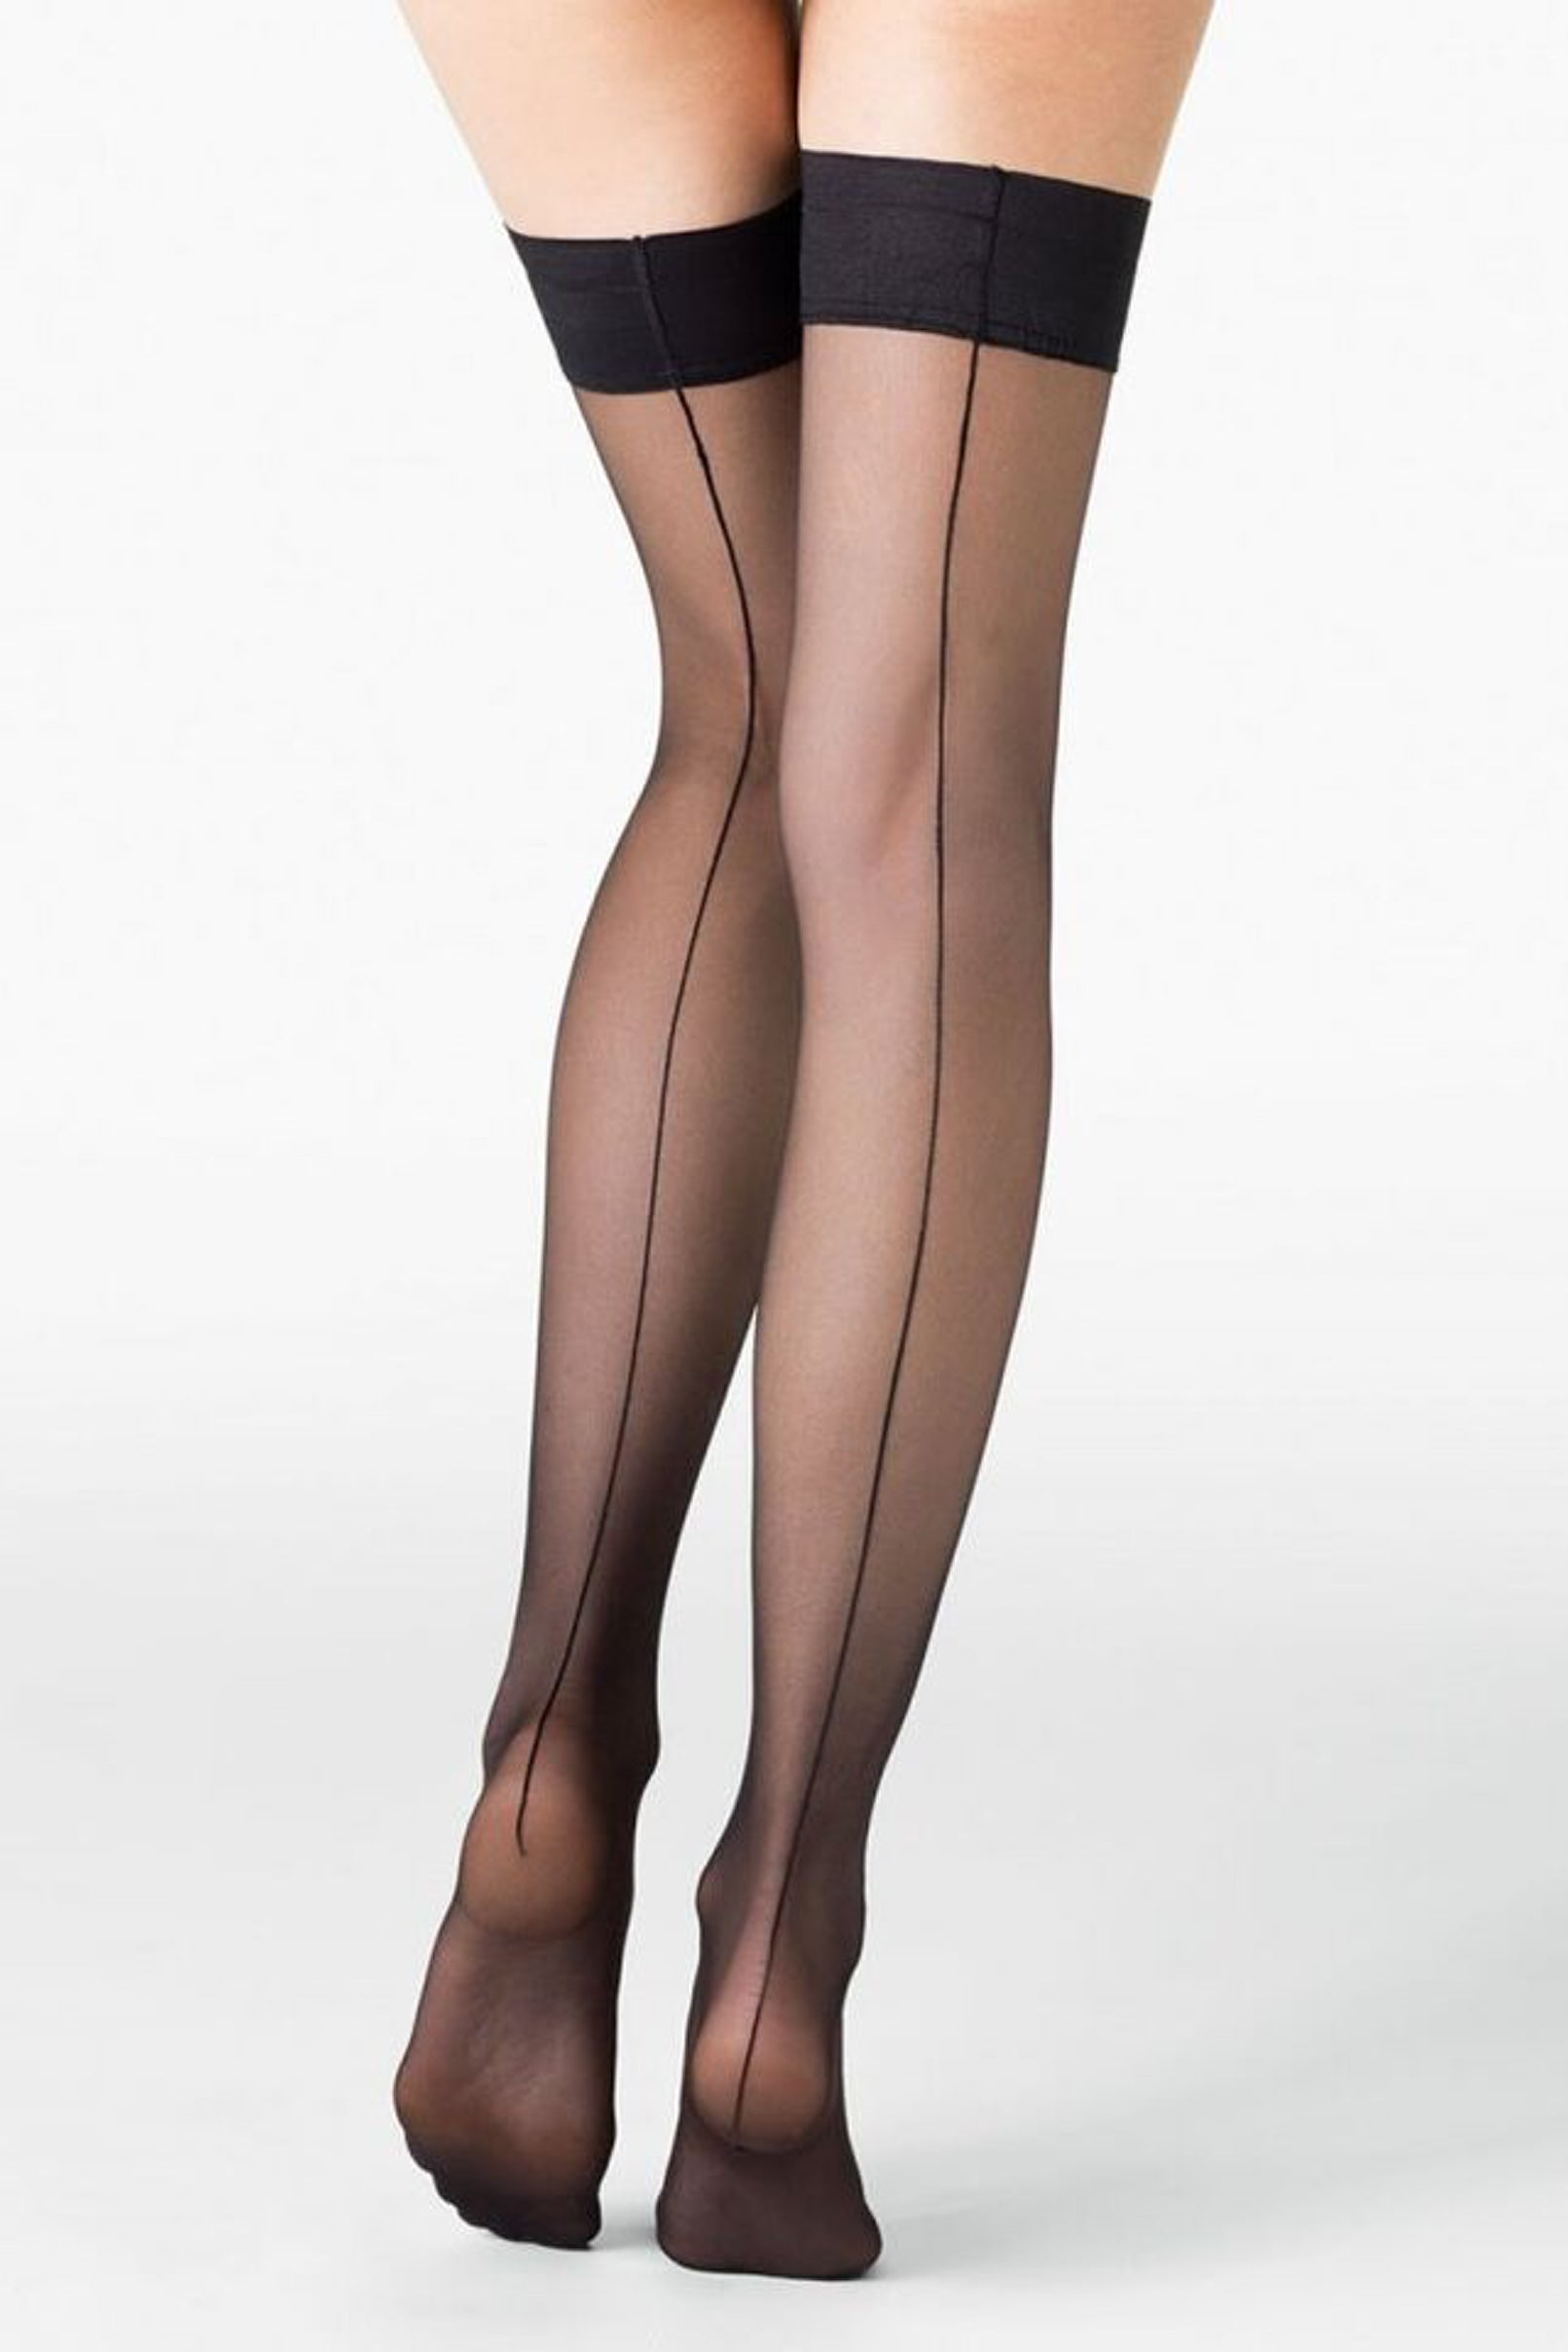 Fogal Catwalk Couture 10 Back Seam Thigh High Stay-Up 223